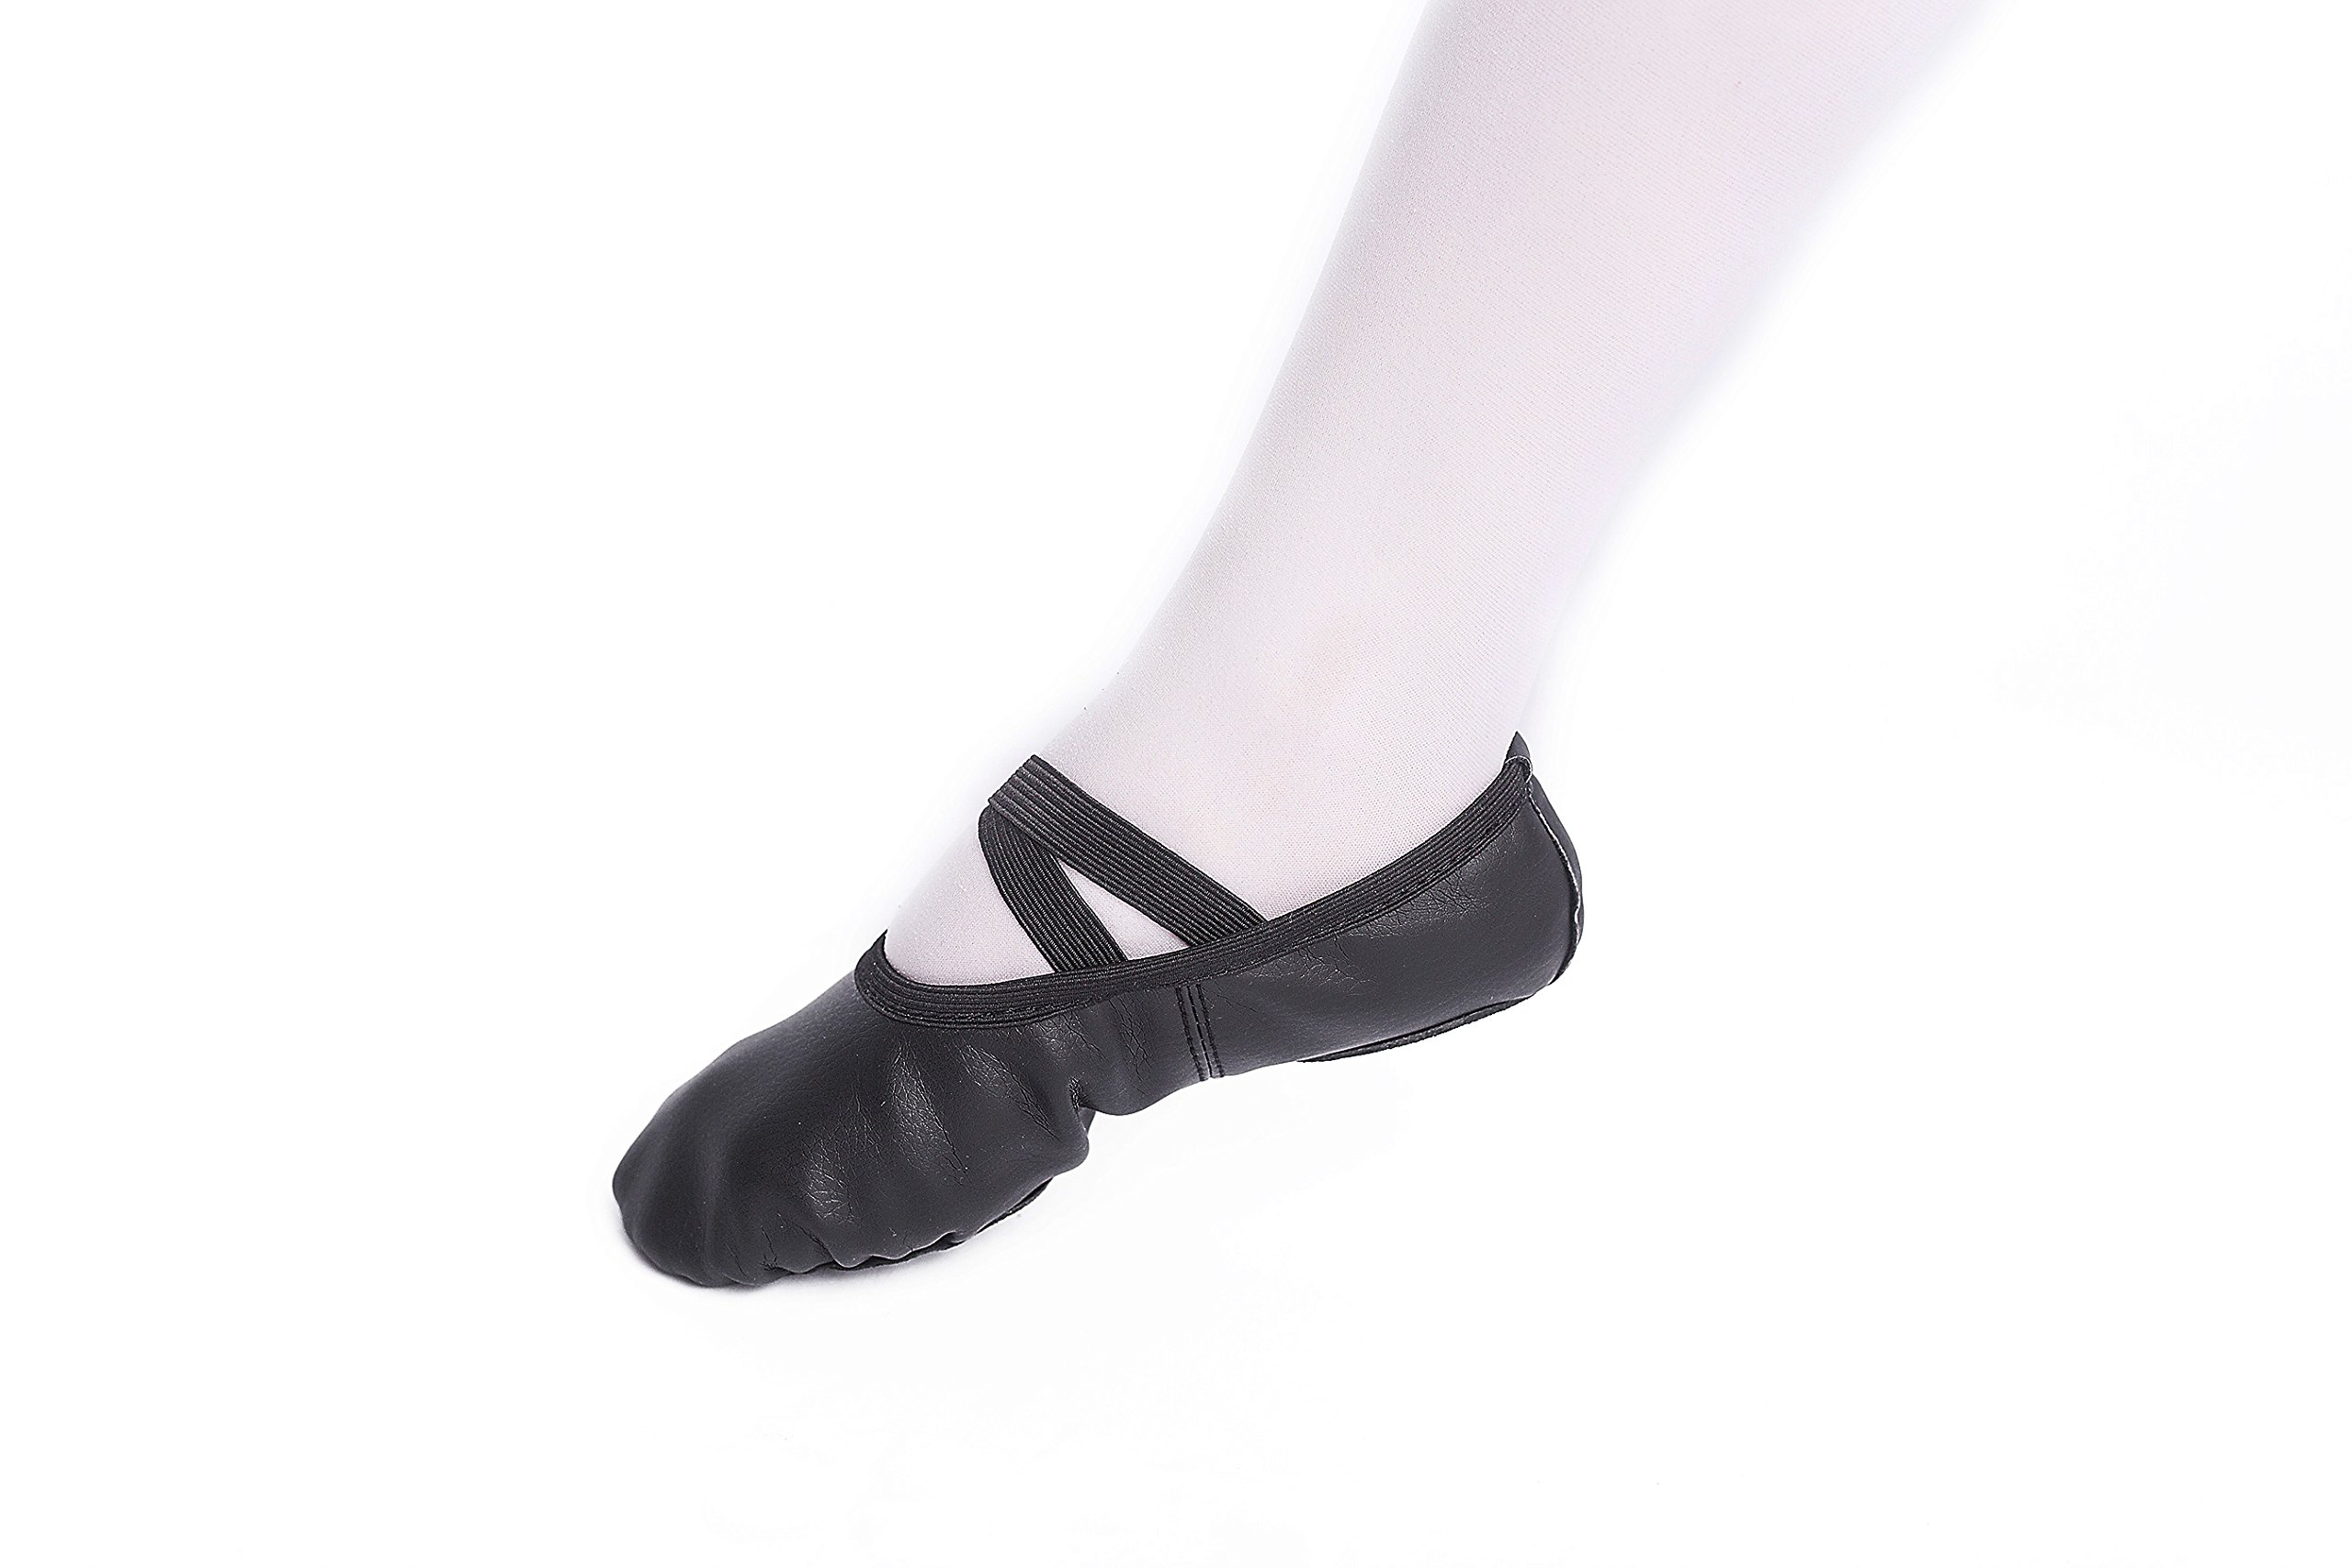 FERMAID Leather Ballet Dance Shoes Girls Pointe Shoes Slippers Flats Yoga Shoe(Toddler/Little Kid/Big Kid/Women) (215, Black)